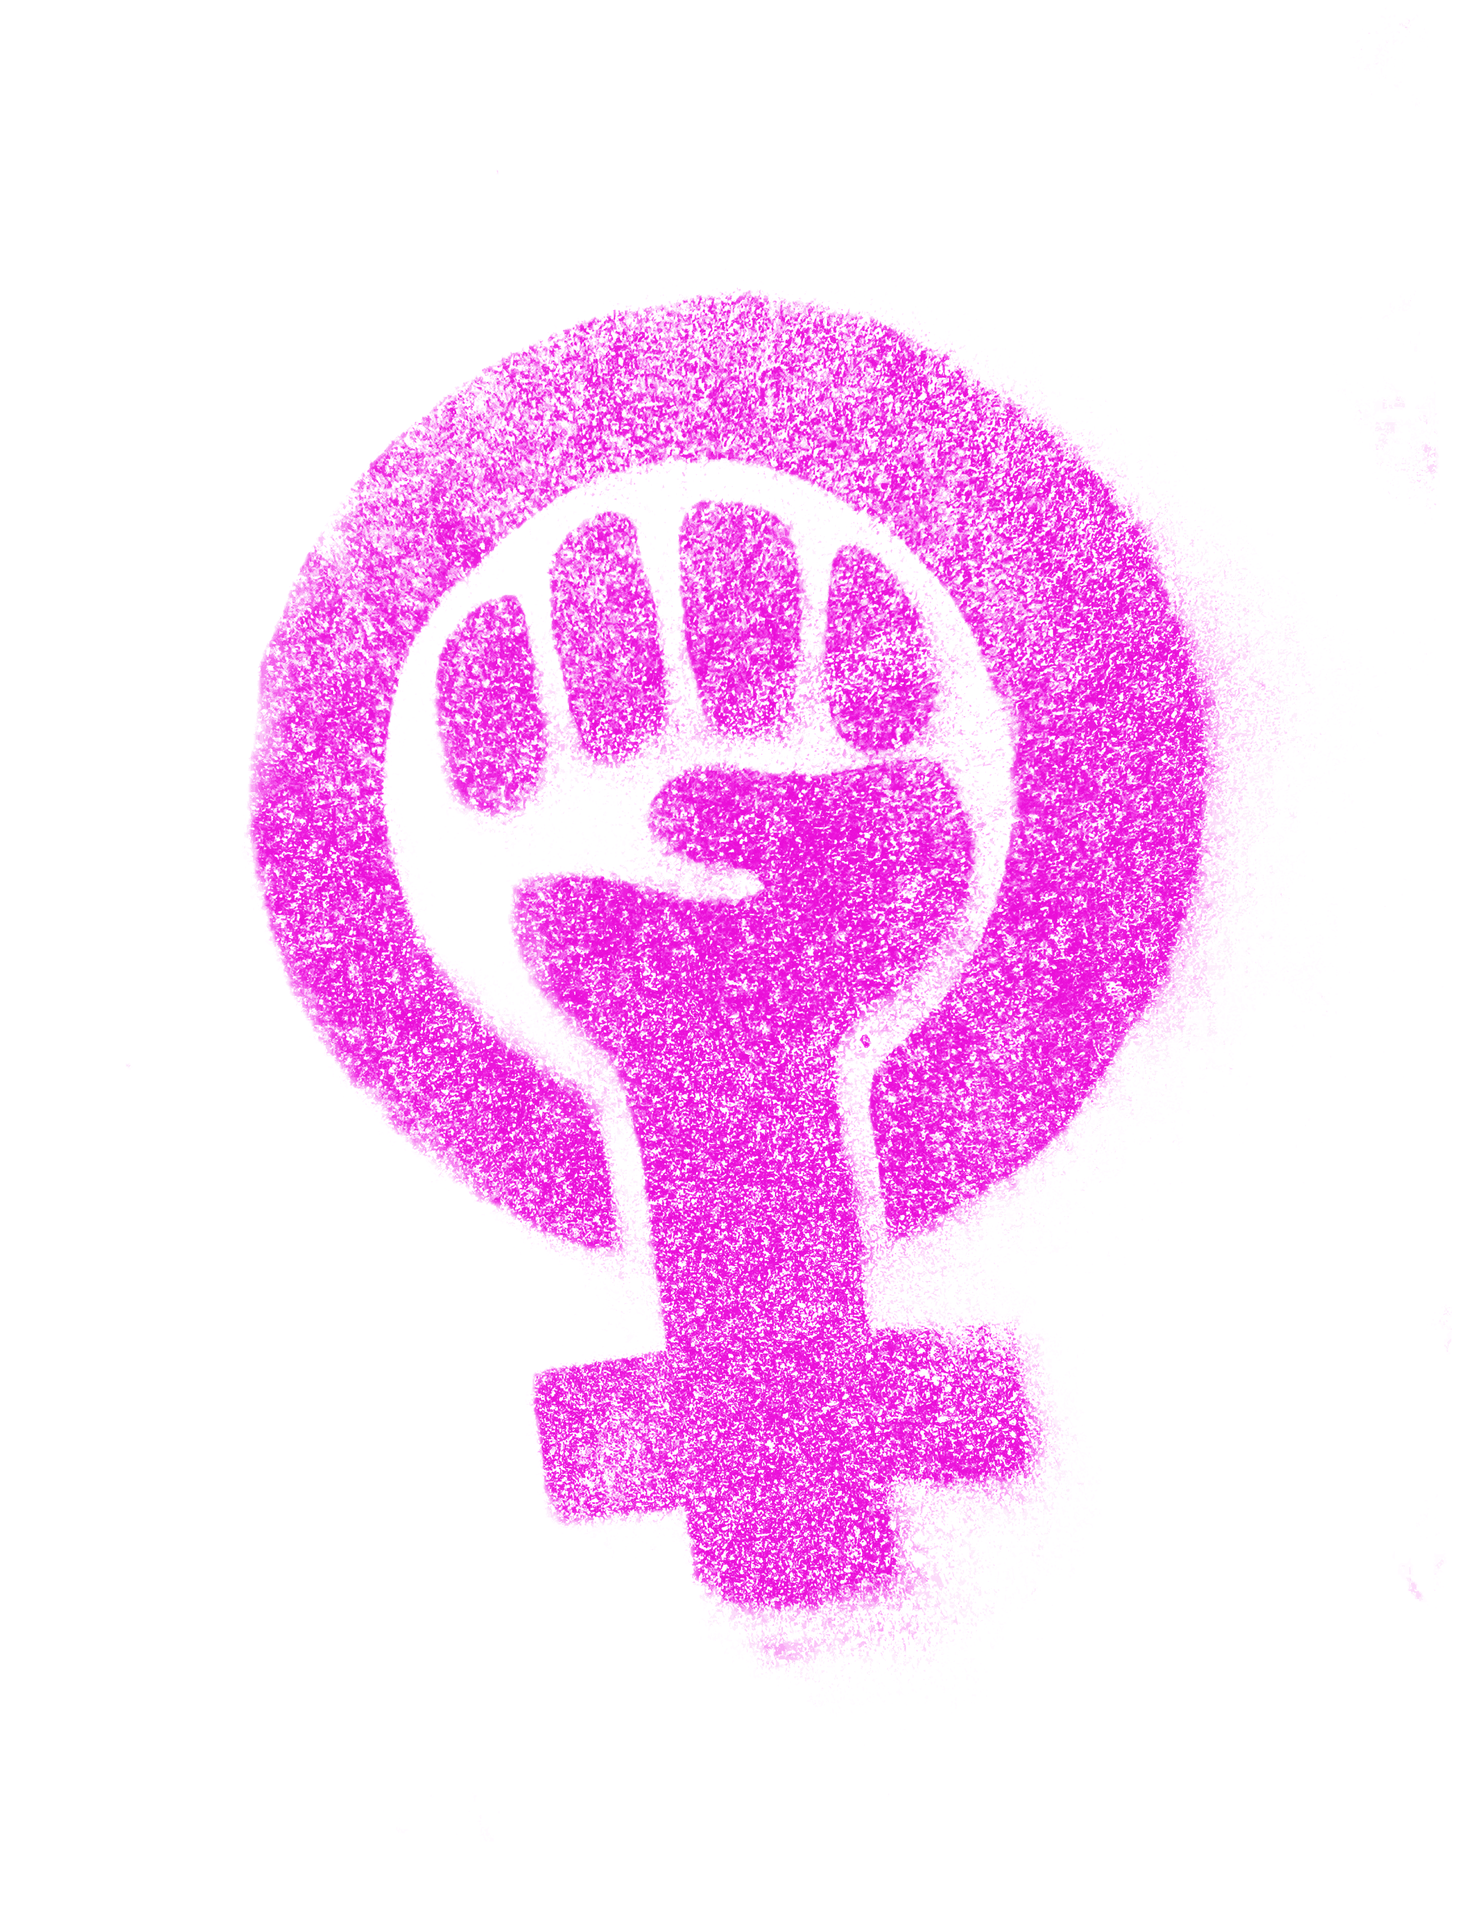 Illustration of a pink fist with the female gender sign as the wrist in a pink circle